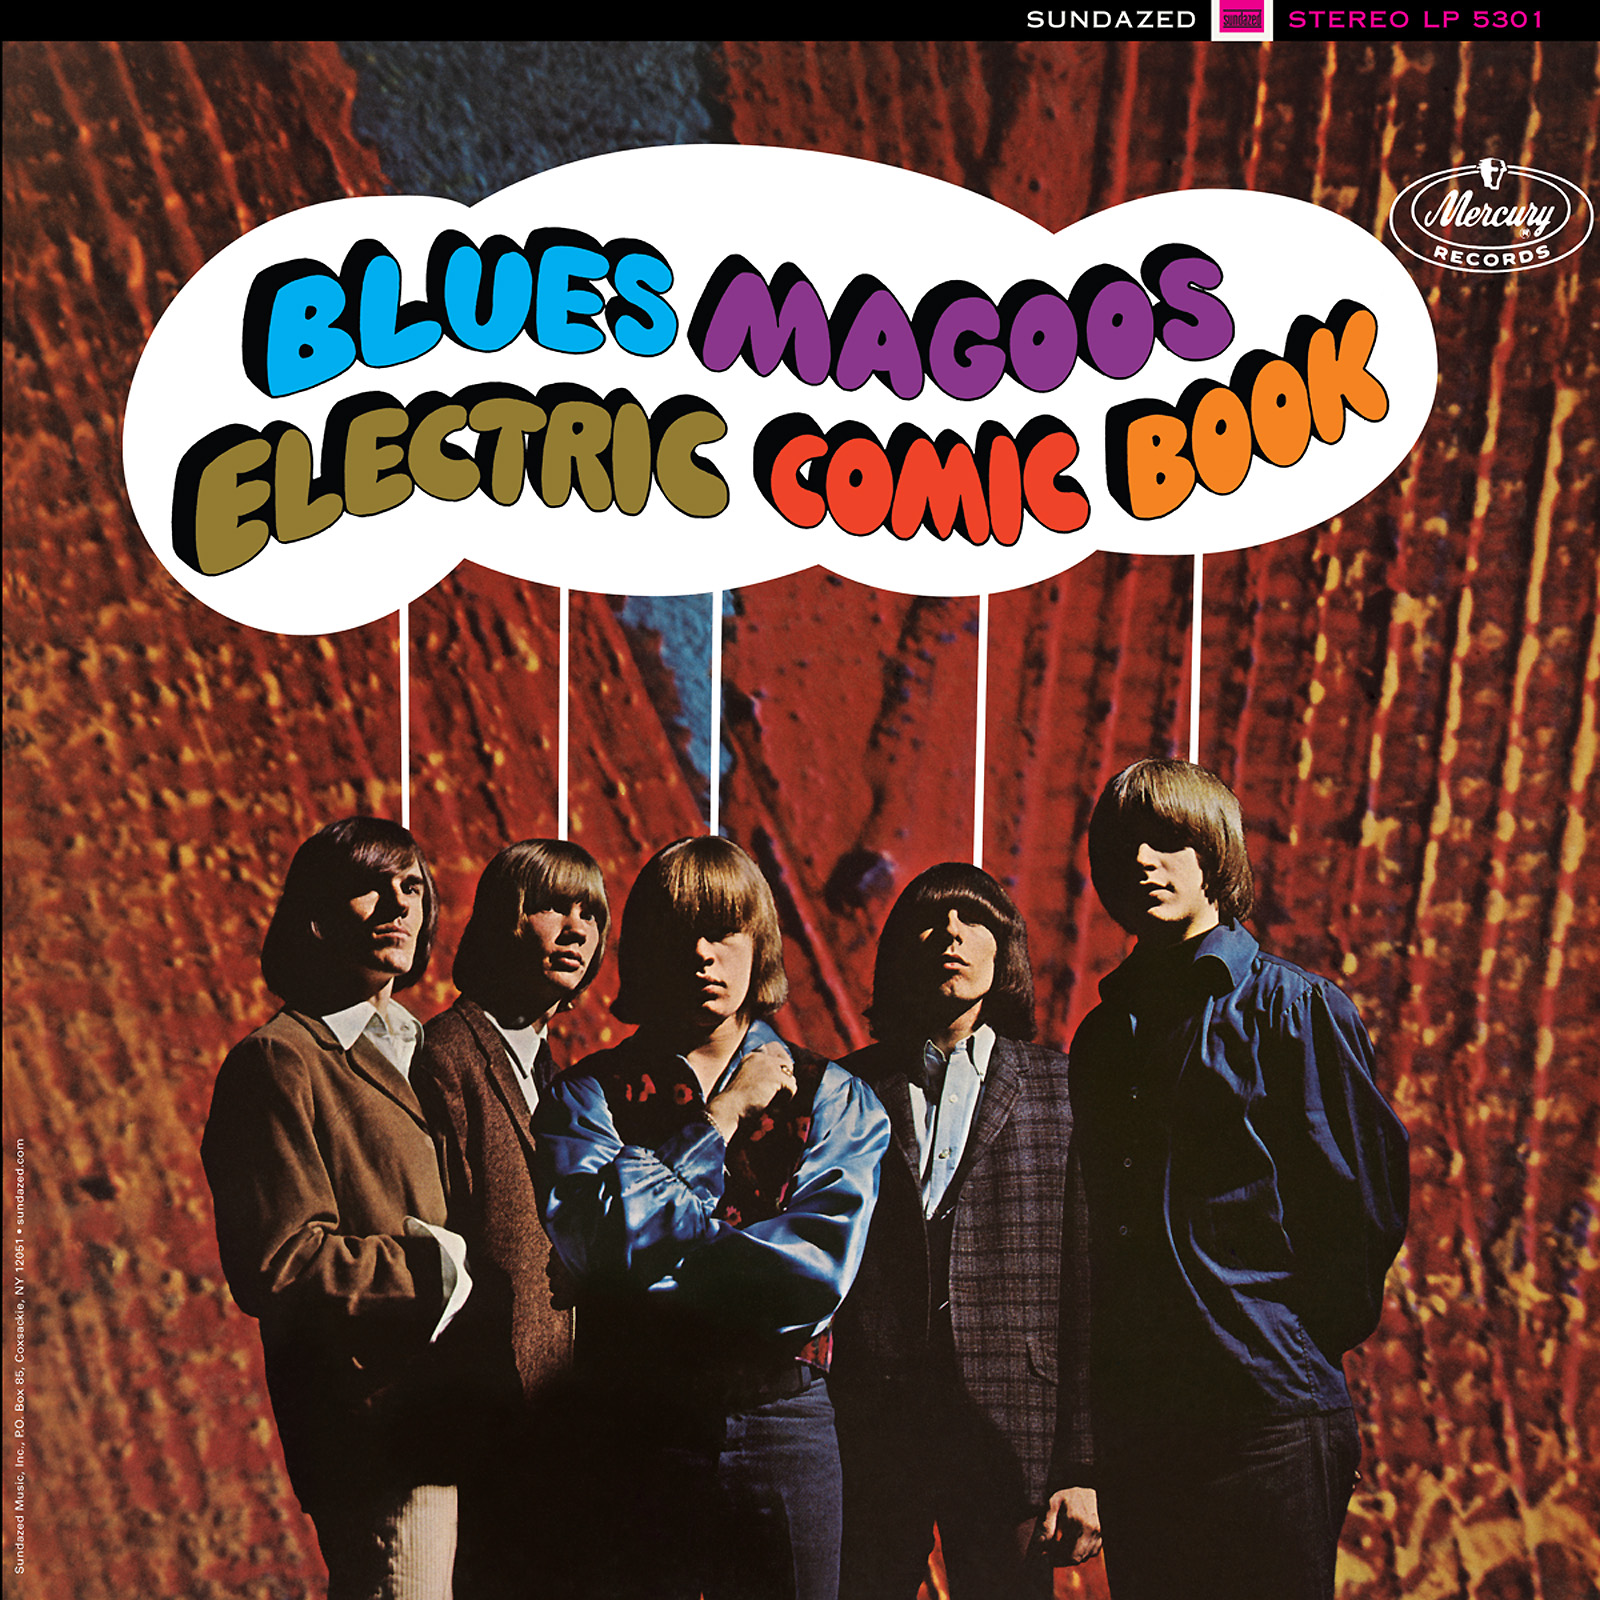 Blues Magoos - Electric Comic Book LP - LP 5301